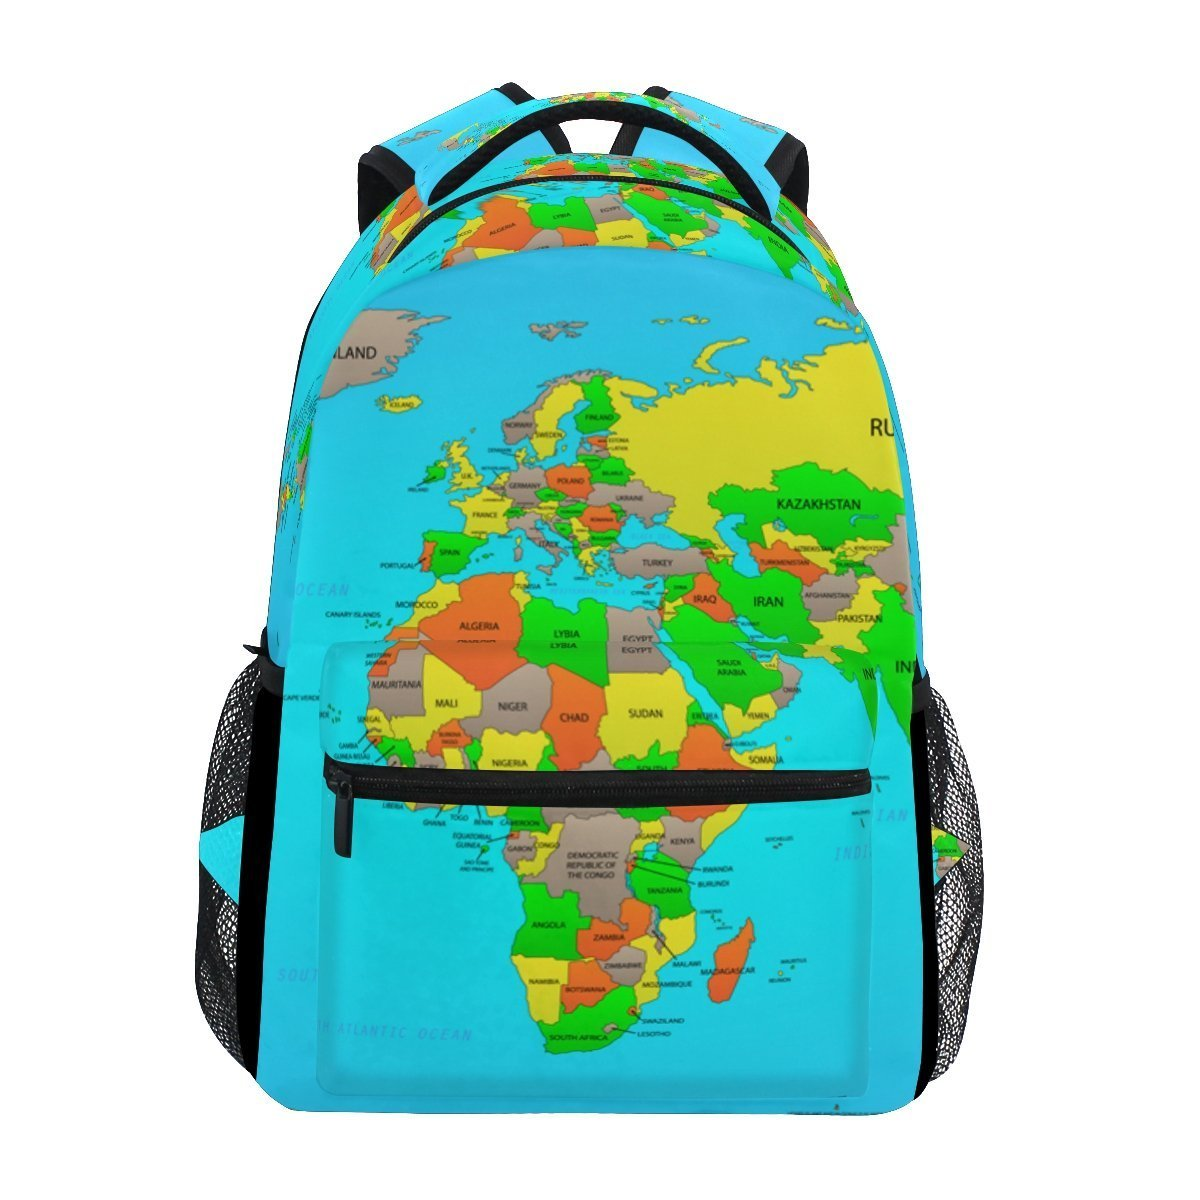 Amazon.com | World Map Uni Rucksack Satchel Casual ... on map shoes, map luggage, map boots, map crossbody, map skirt, map phone case, map jacket, map scarf, map white, map trunk, map suitcase, map wallet, map sweater,